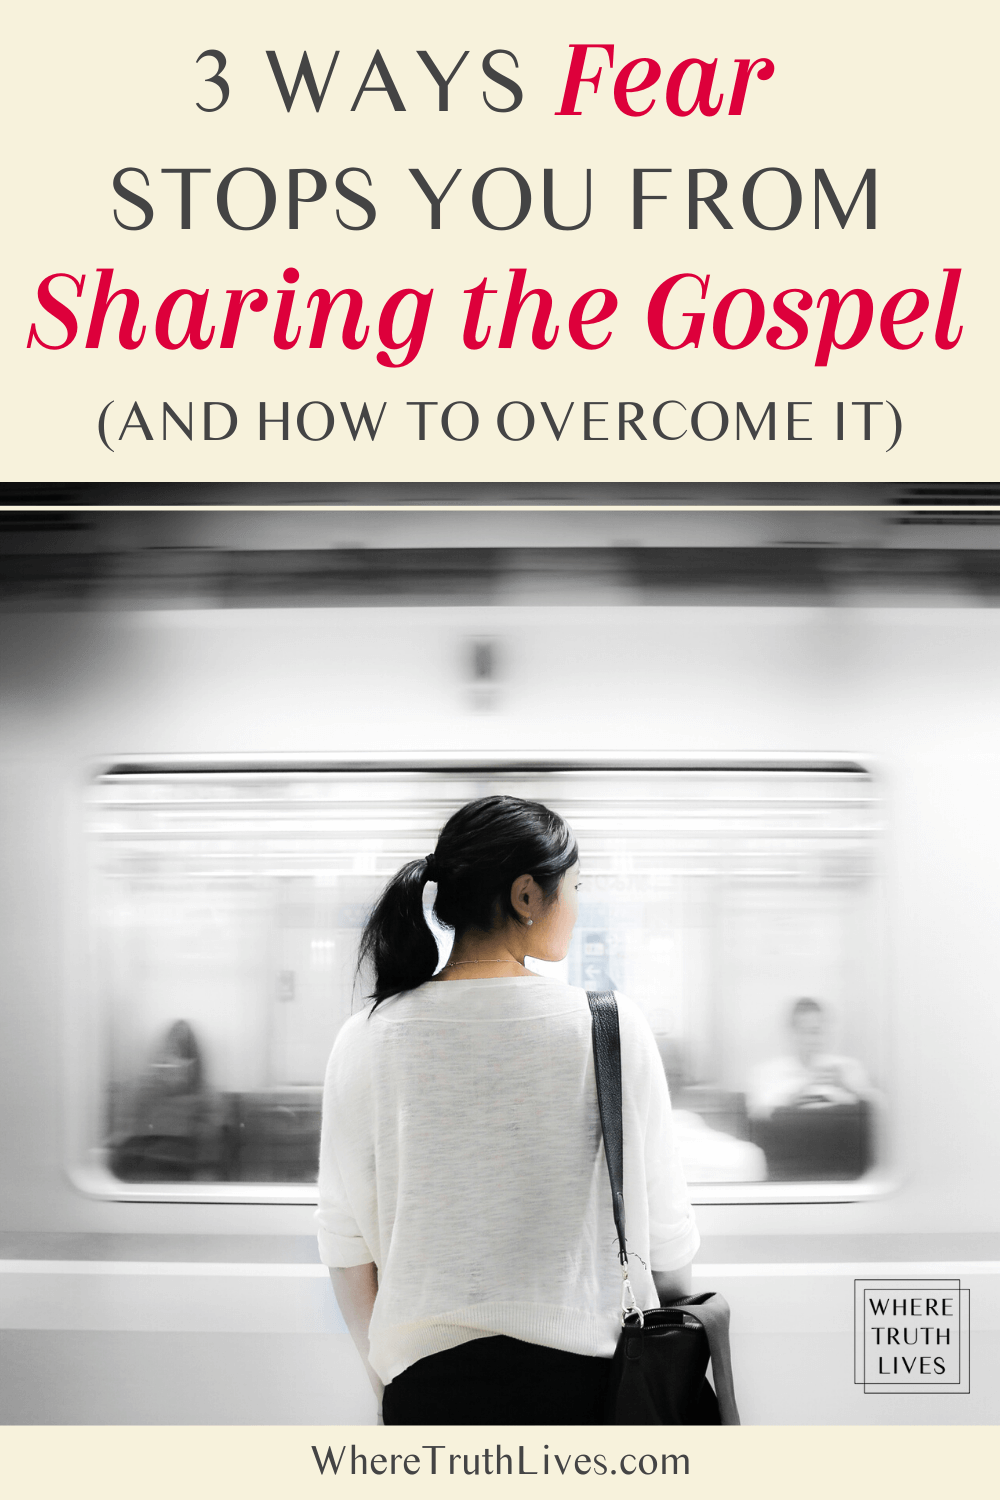 3 Ways Fear Stops Sharing Gospel Overcome